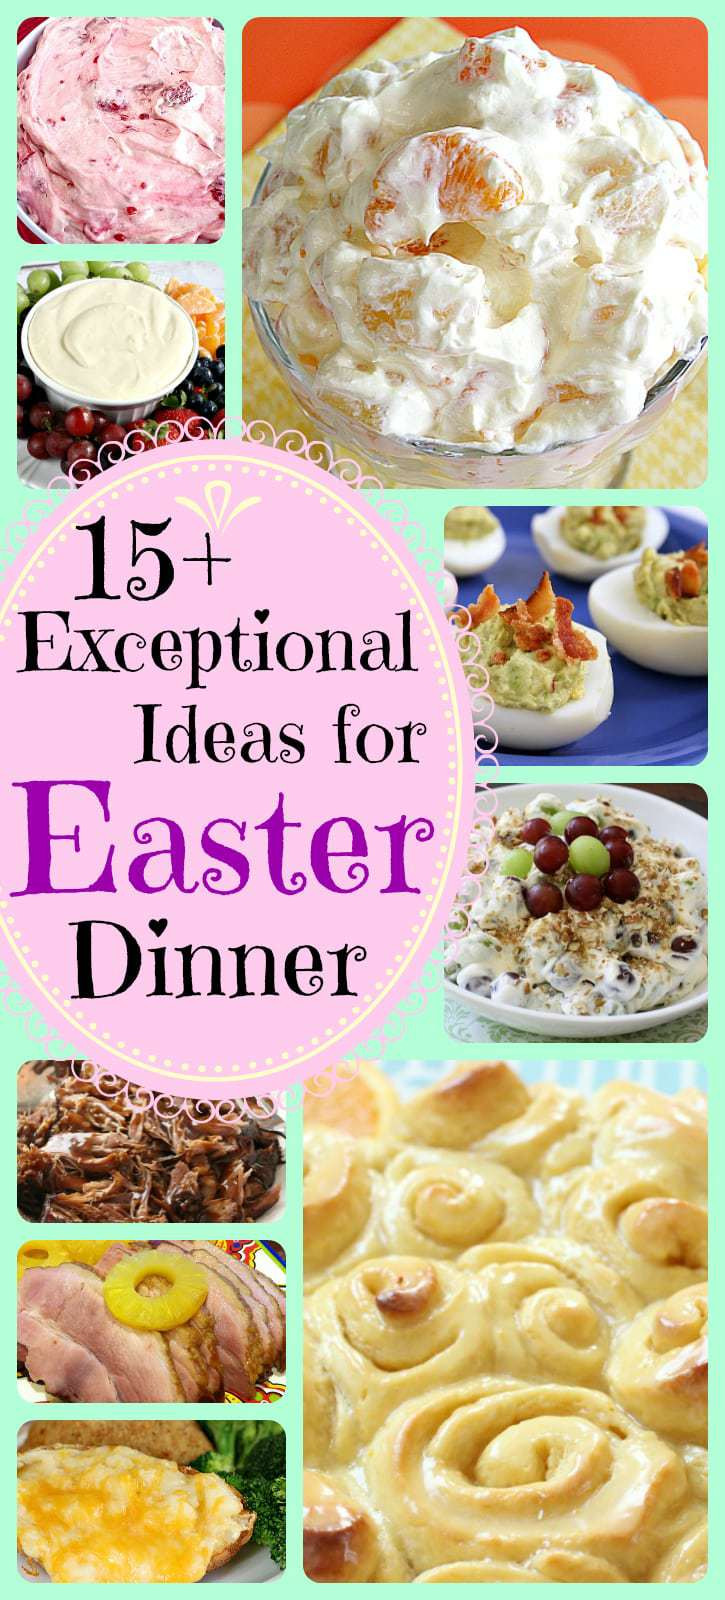 Easy Easter Dinner Recipes  EASY & DELICIOUS EASTER DINNER RECIPES Butter with a